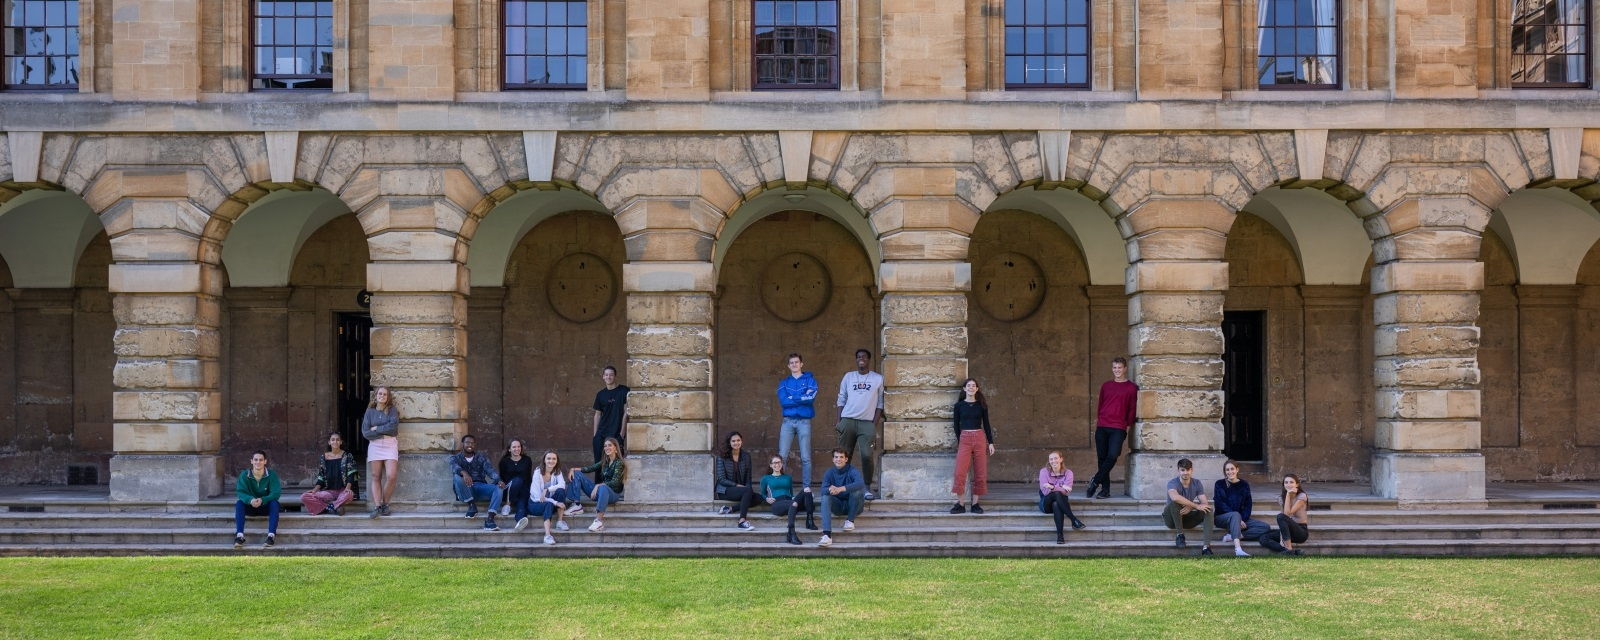 students in the Front Quad